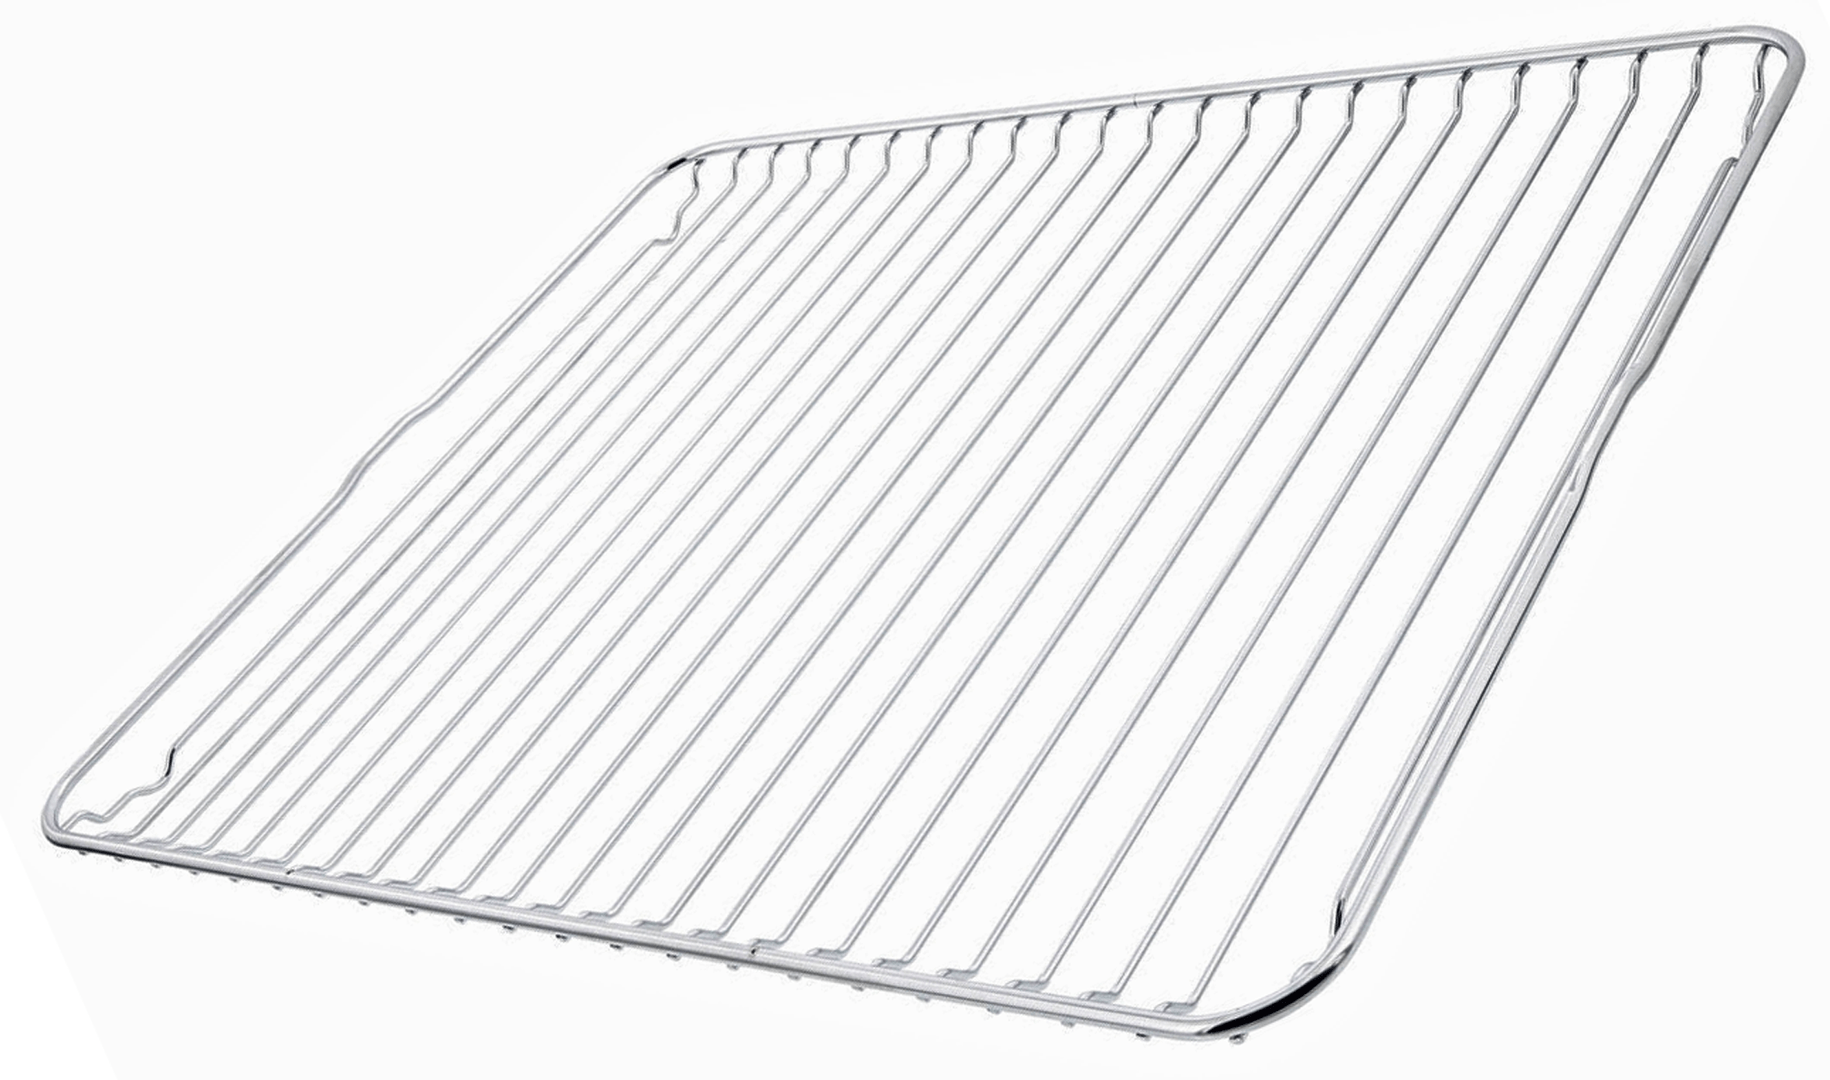 Aeg Electrolux Oven Grille 466x385mm